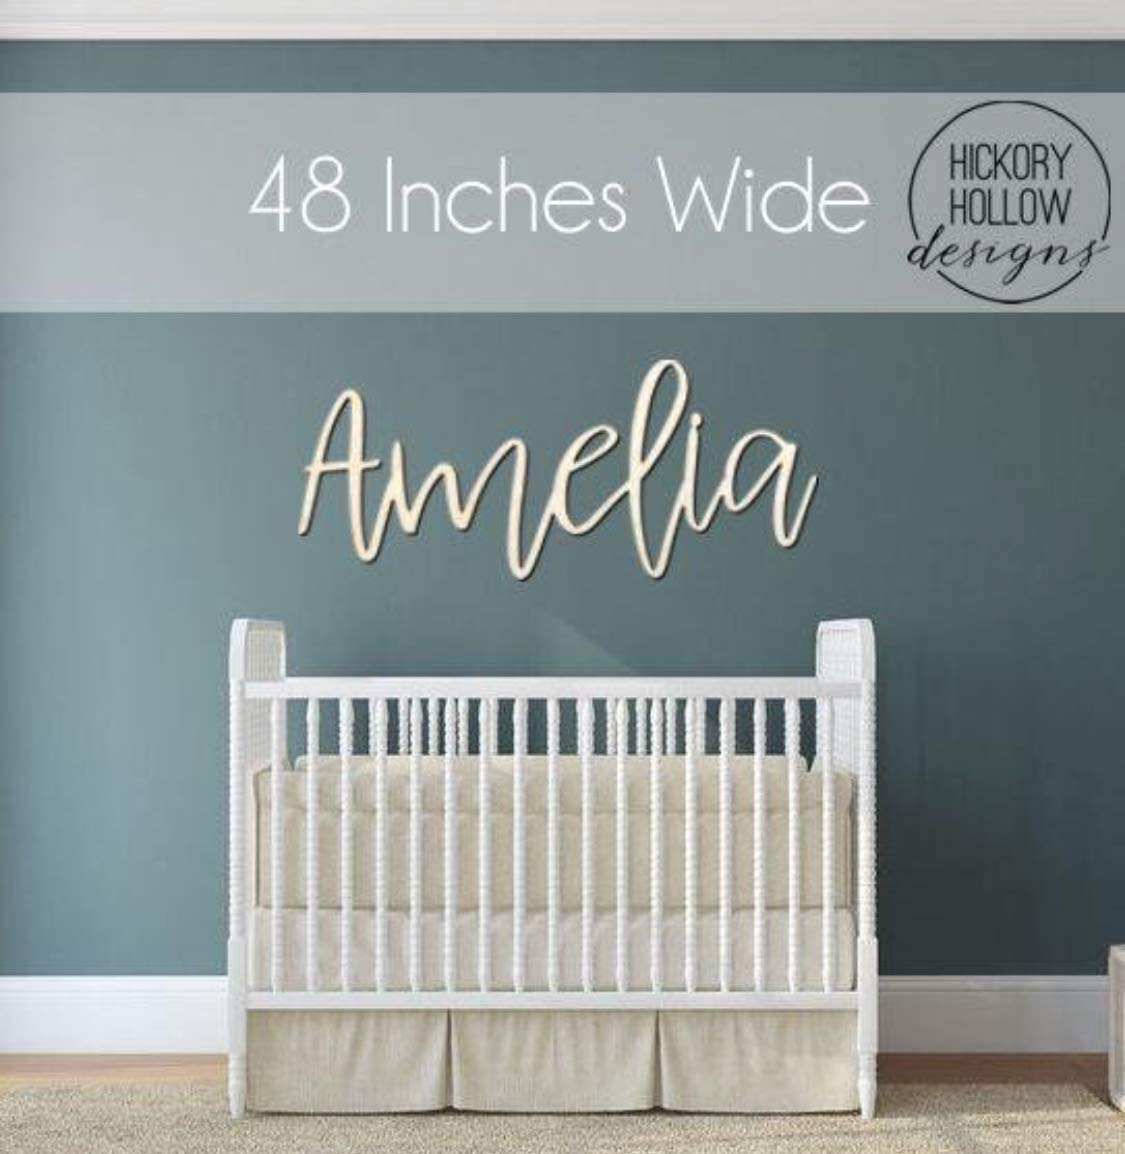 Wood Nursery Name Cut Out, Personalized Baby Name Sign, Nursery Wall Decor, Wooden Name Plaque, Crib and Kids Room Signage